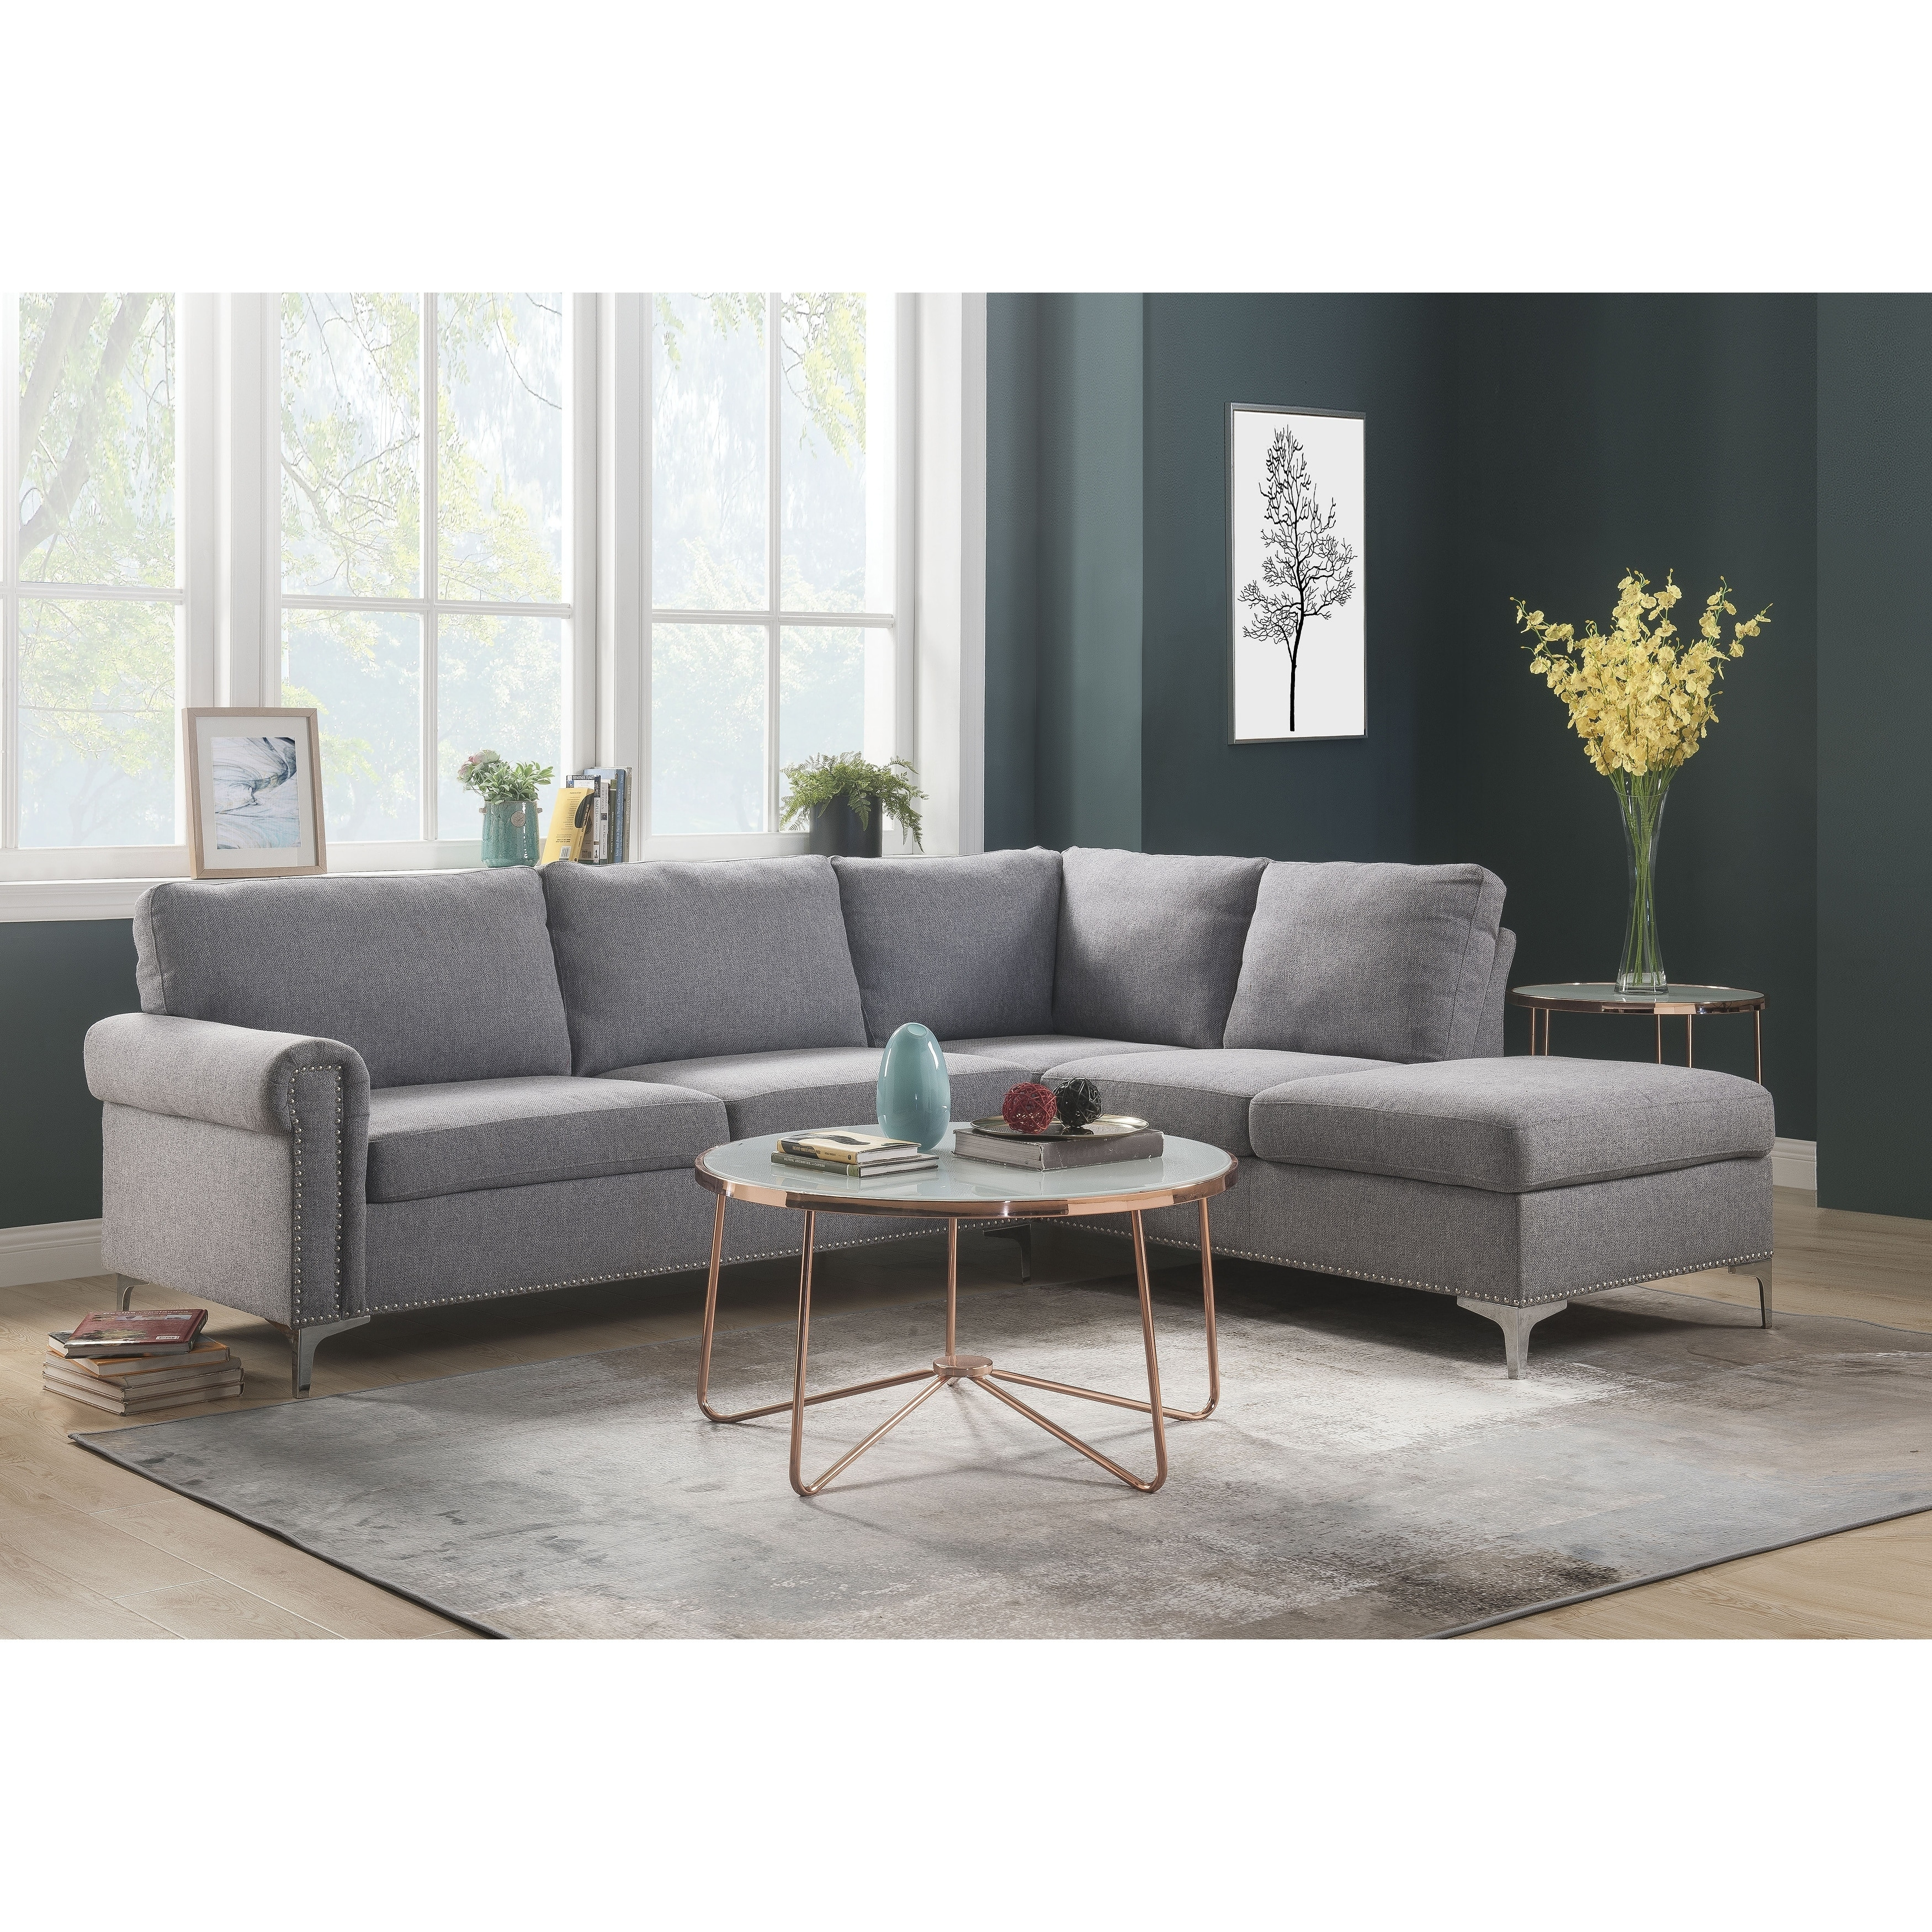 Fabric Upholstered Wooden Sectional Sofa With Metal Legs Gray And Silver White Benzara Grey Sectional Sofa Sectional Sofa Grey Sectional